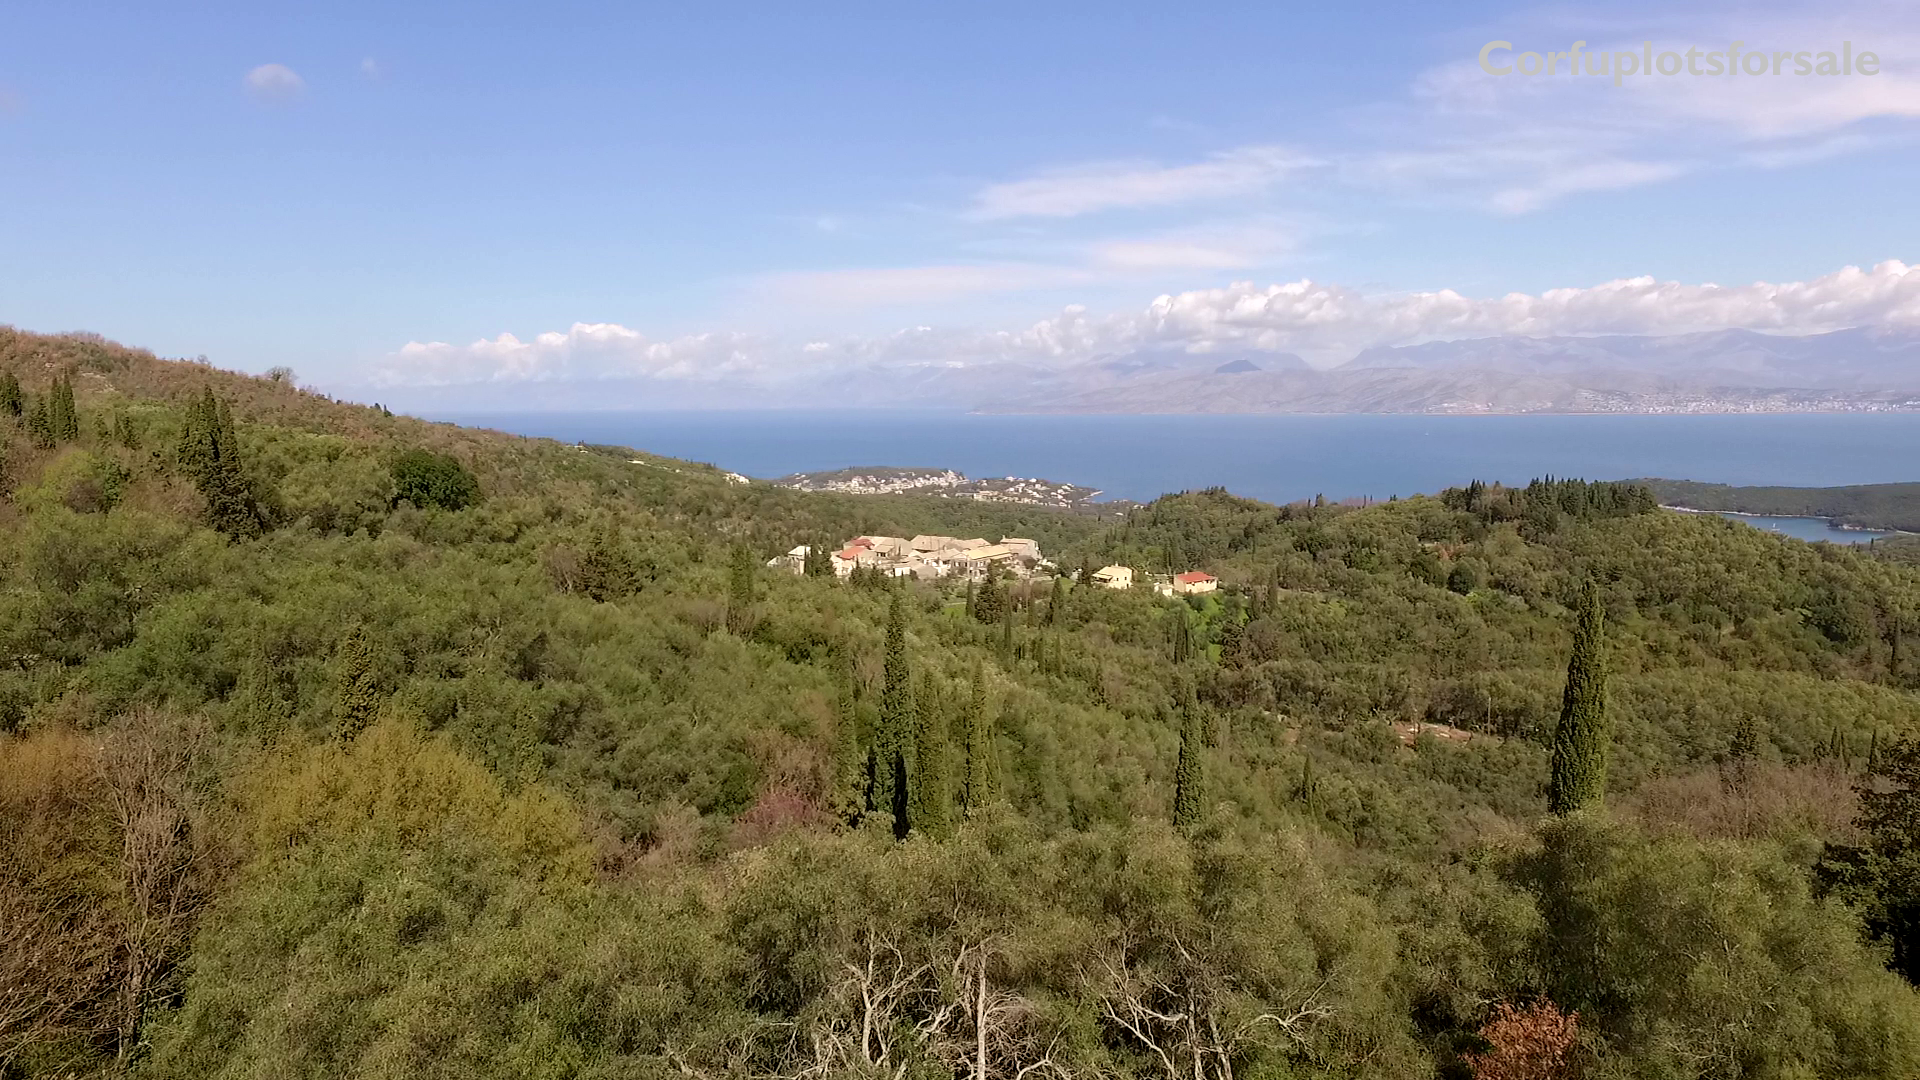 Land for sale in a quite location with view